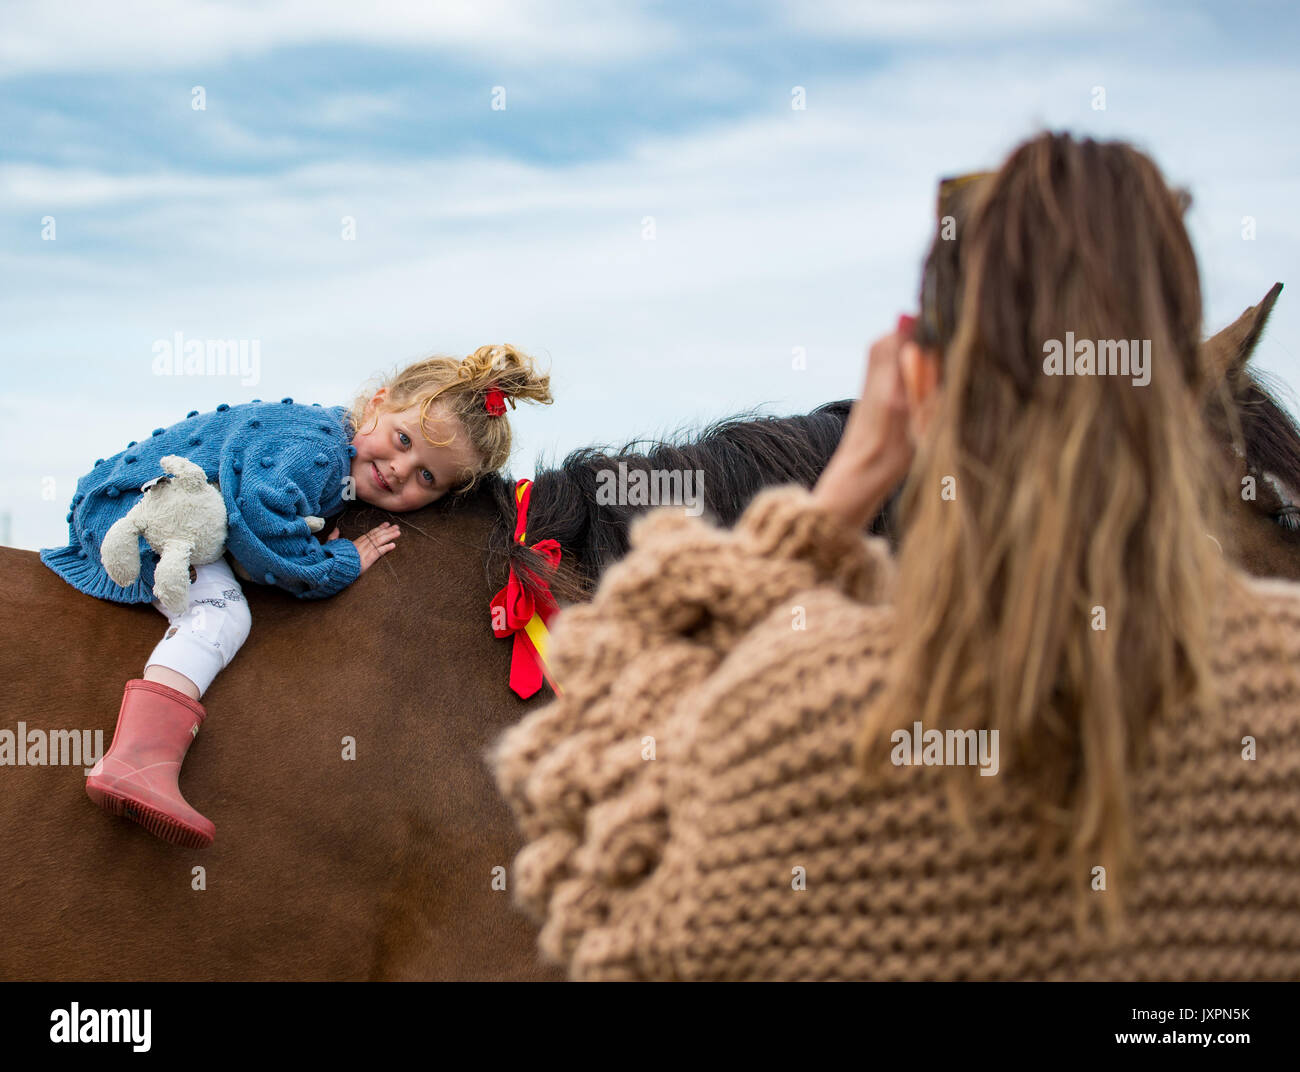 Little girl being photographed on a horse - Stock Image